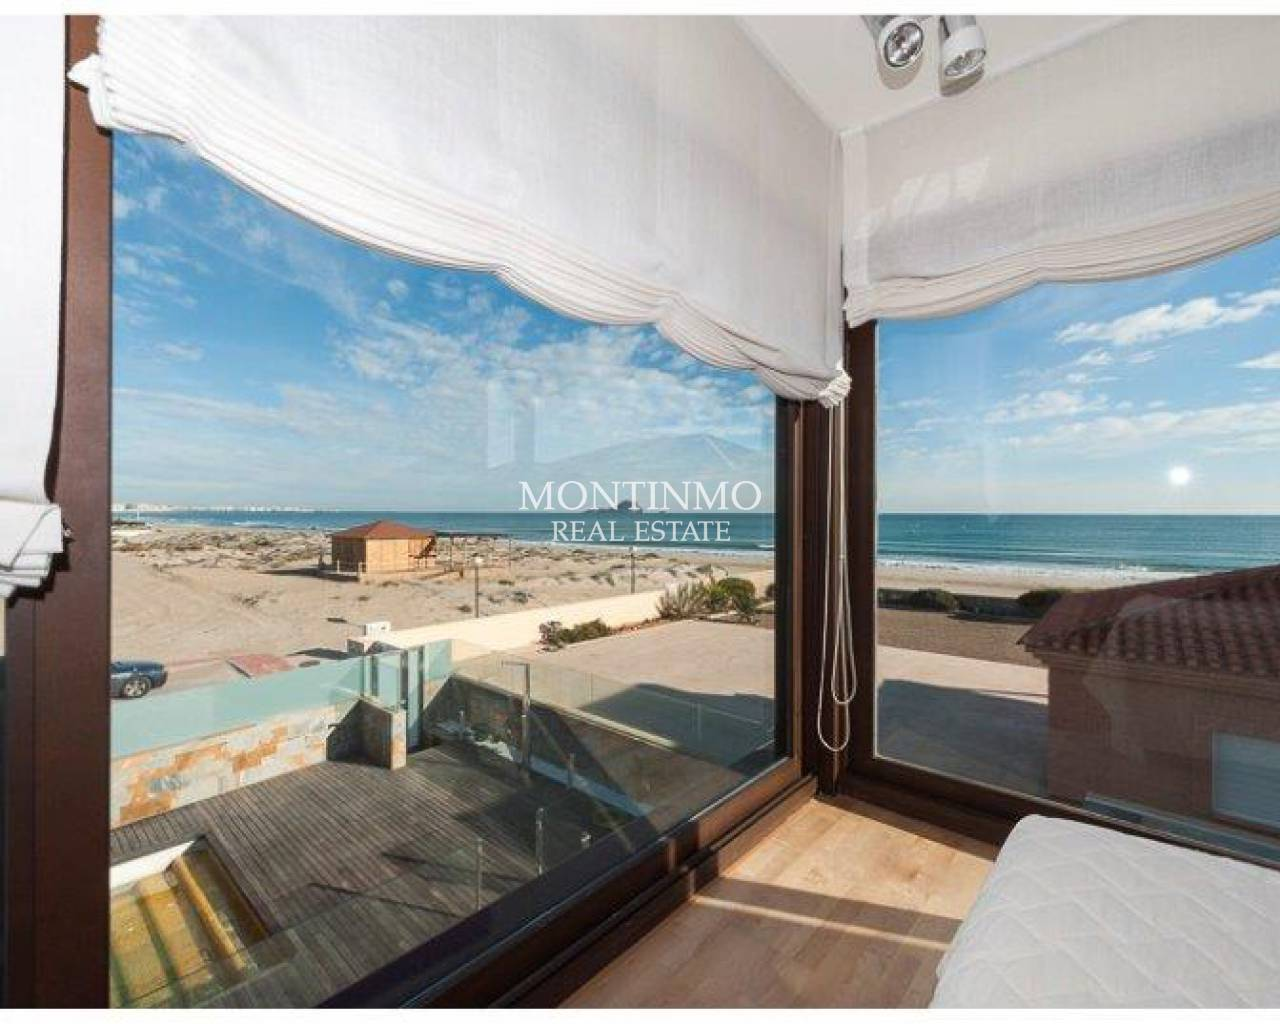 Sale - Villa - La Manga del Mar Menor